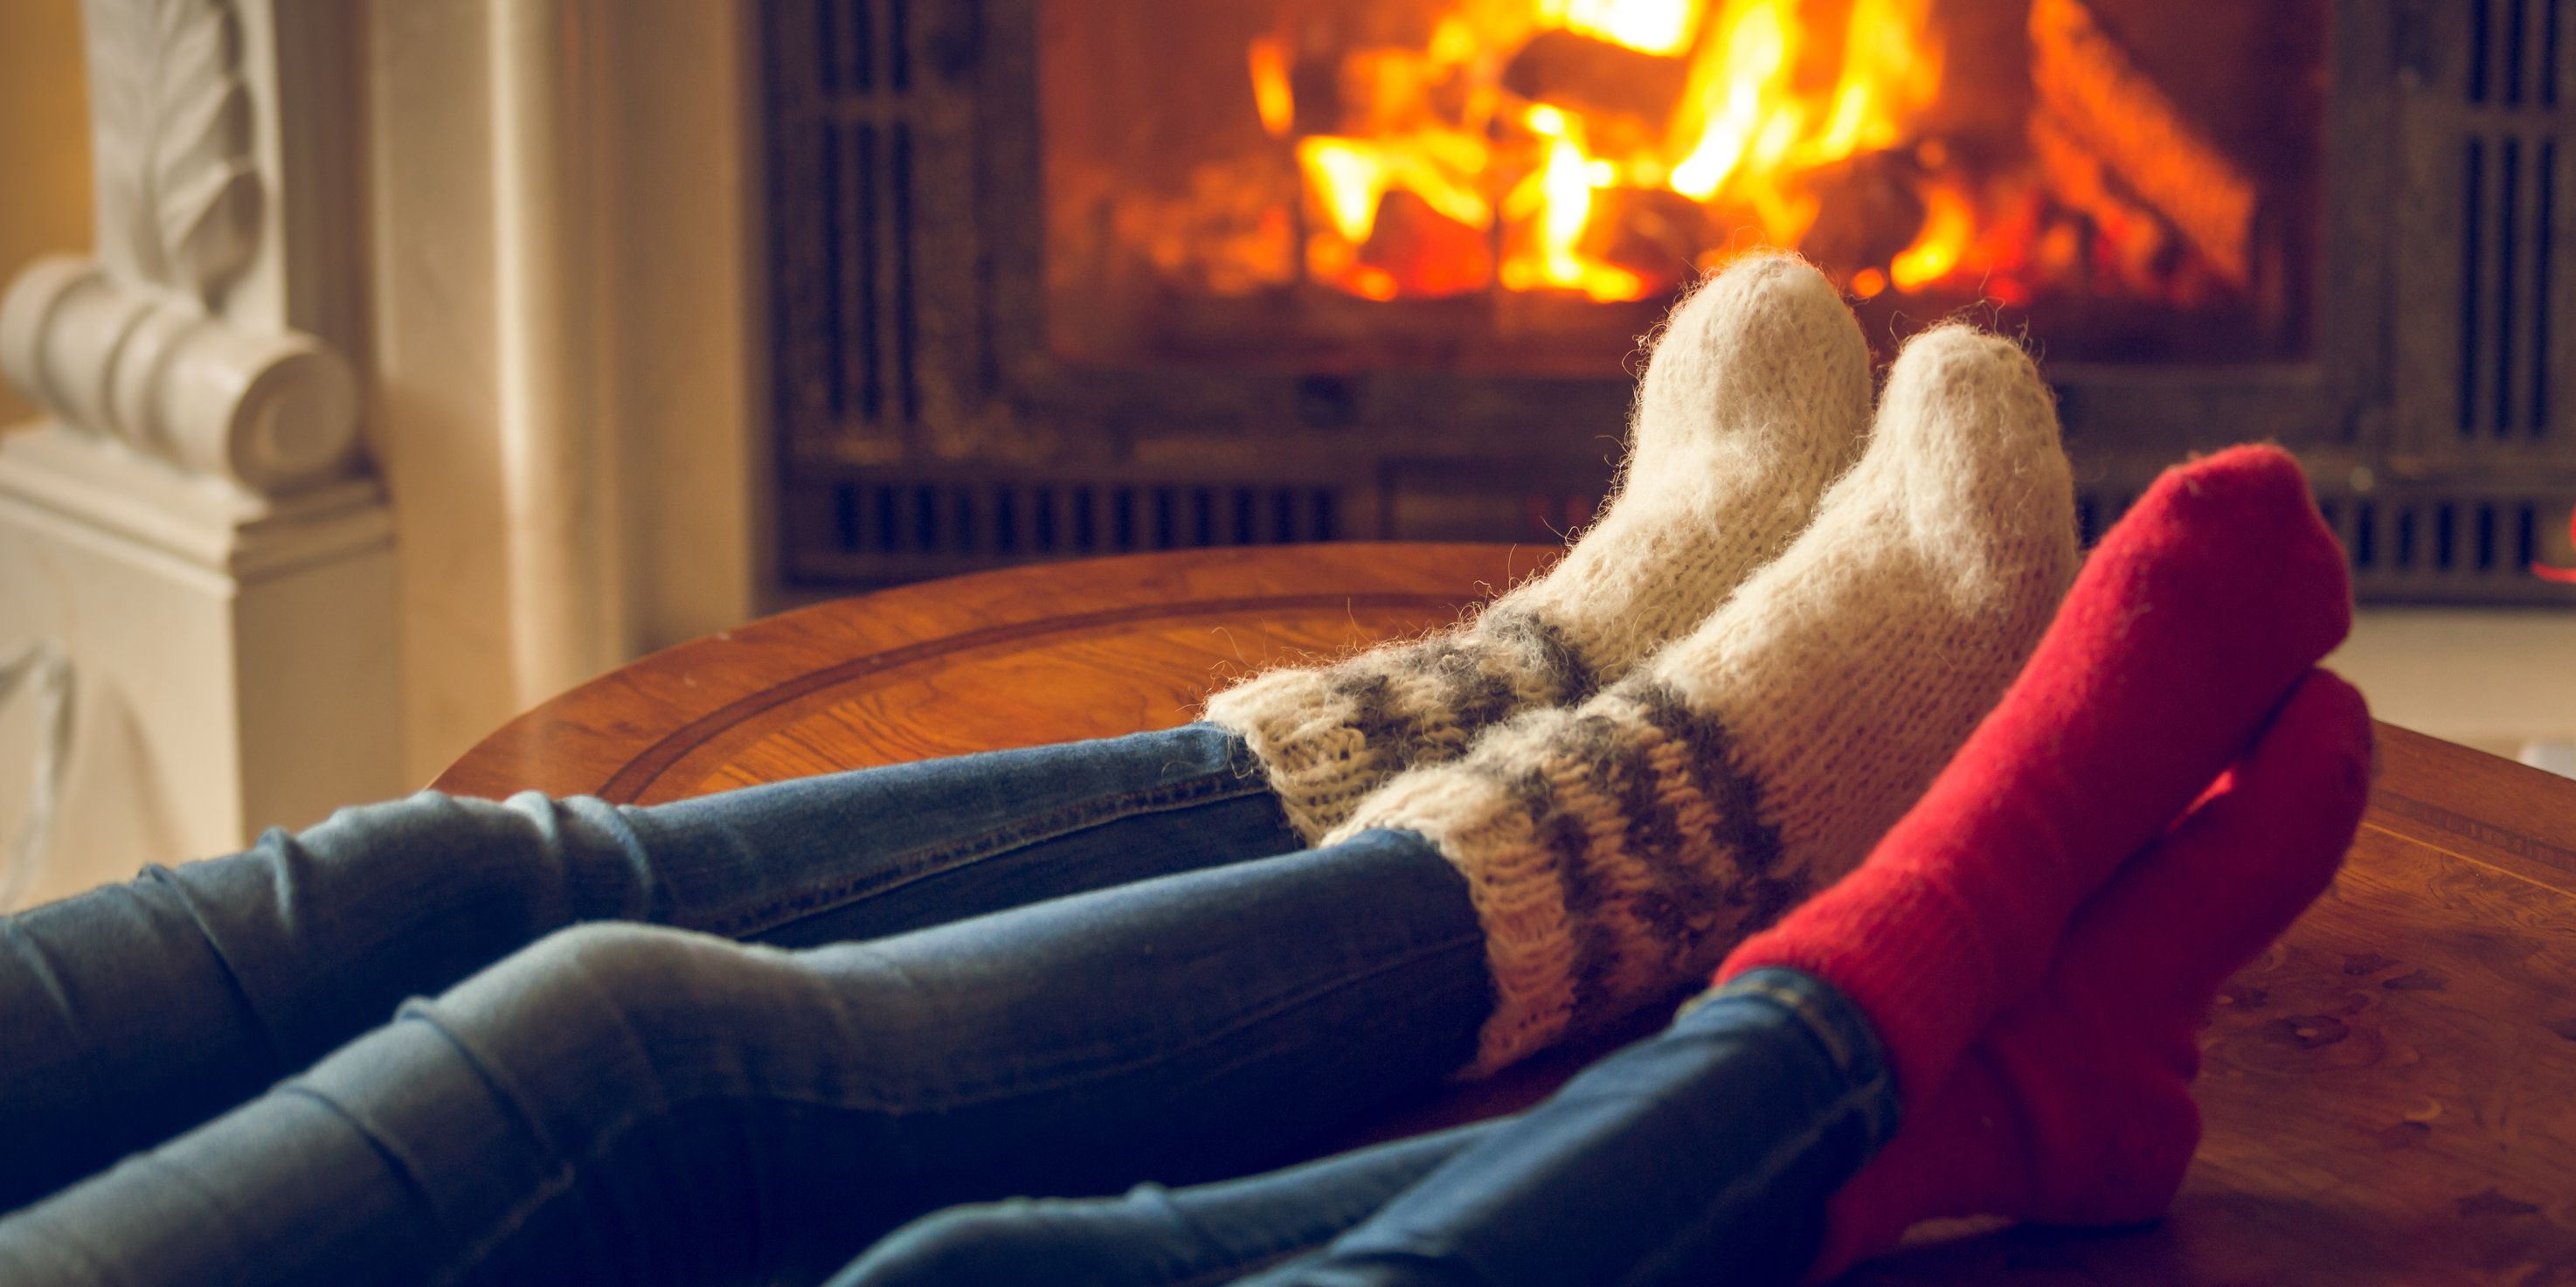 7 Best Winter Date Ideas for Couples Who Want to Stay Inside